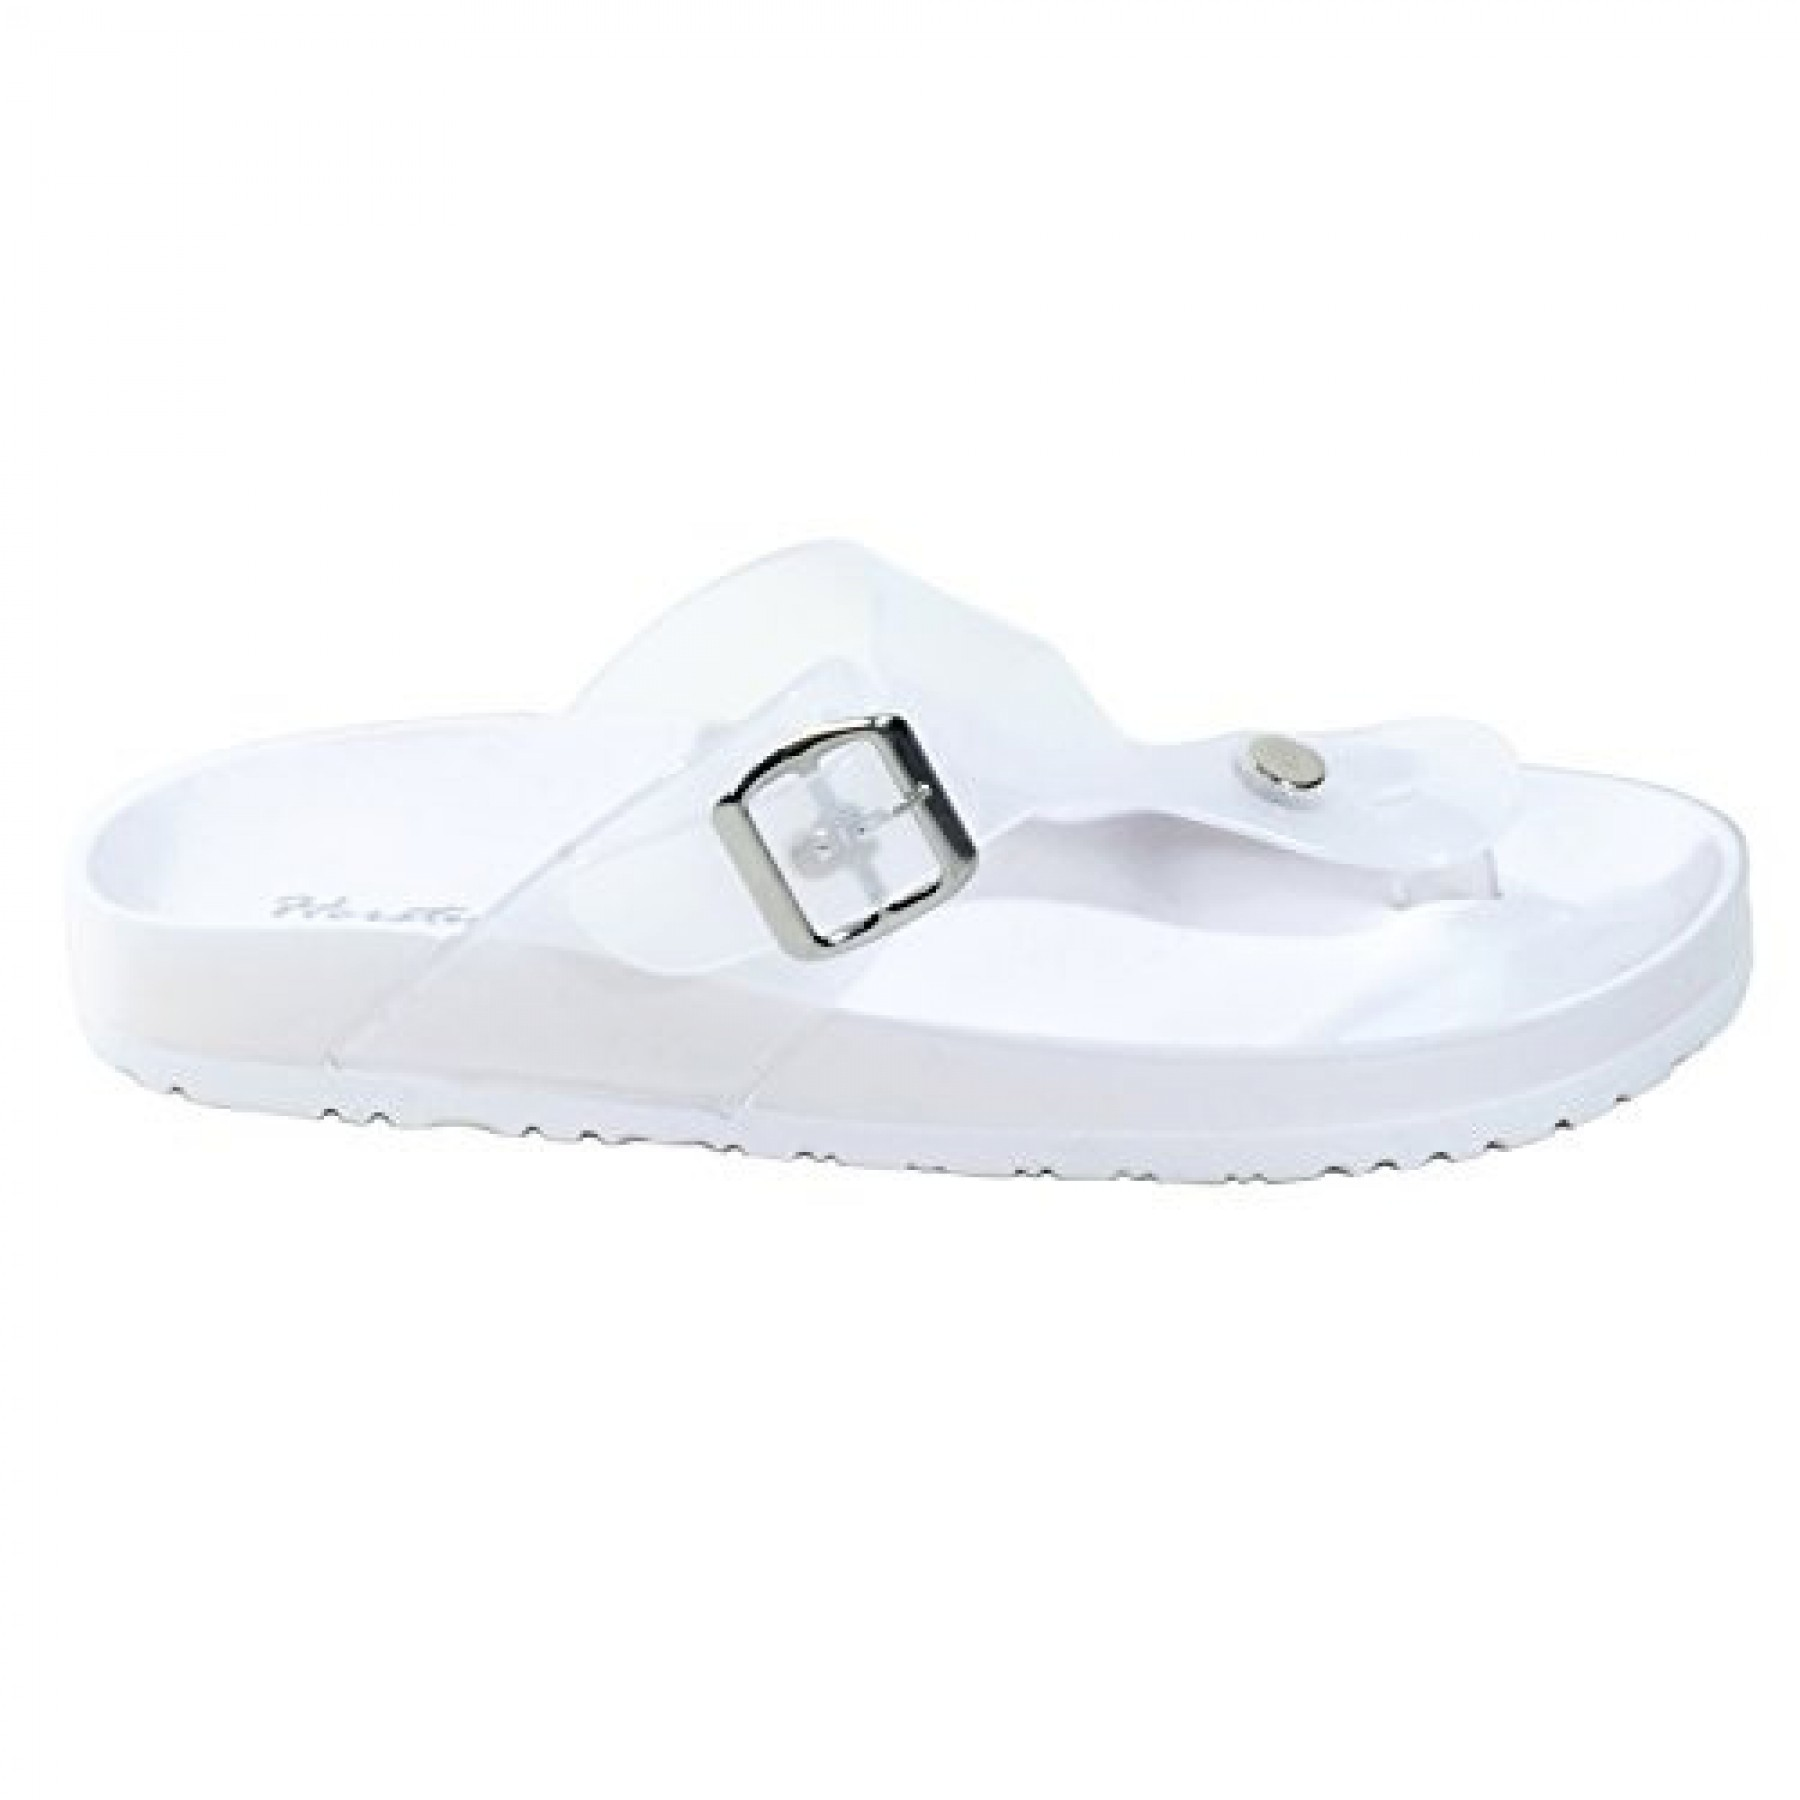 Women's White Manmade Baude Flat Jelly Sandal with Brilliant Buckle Accent